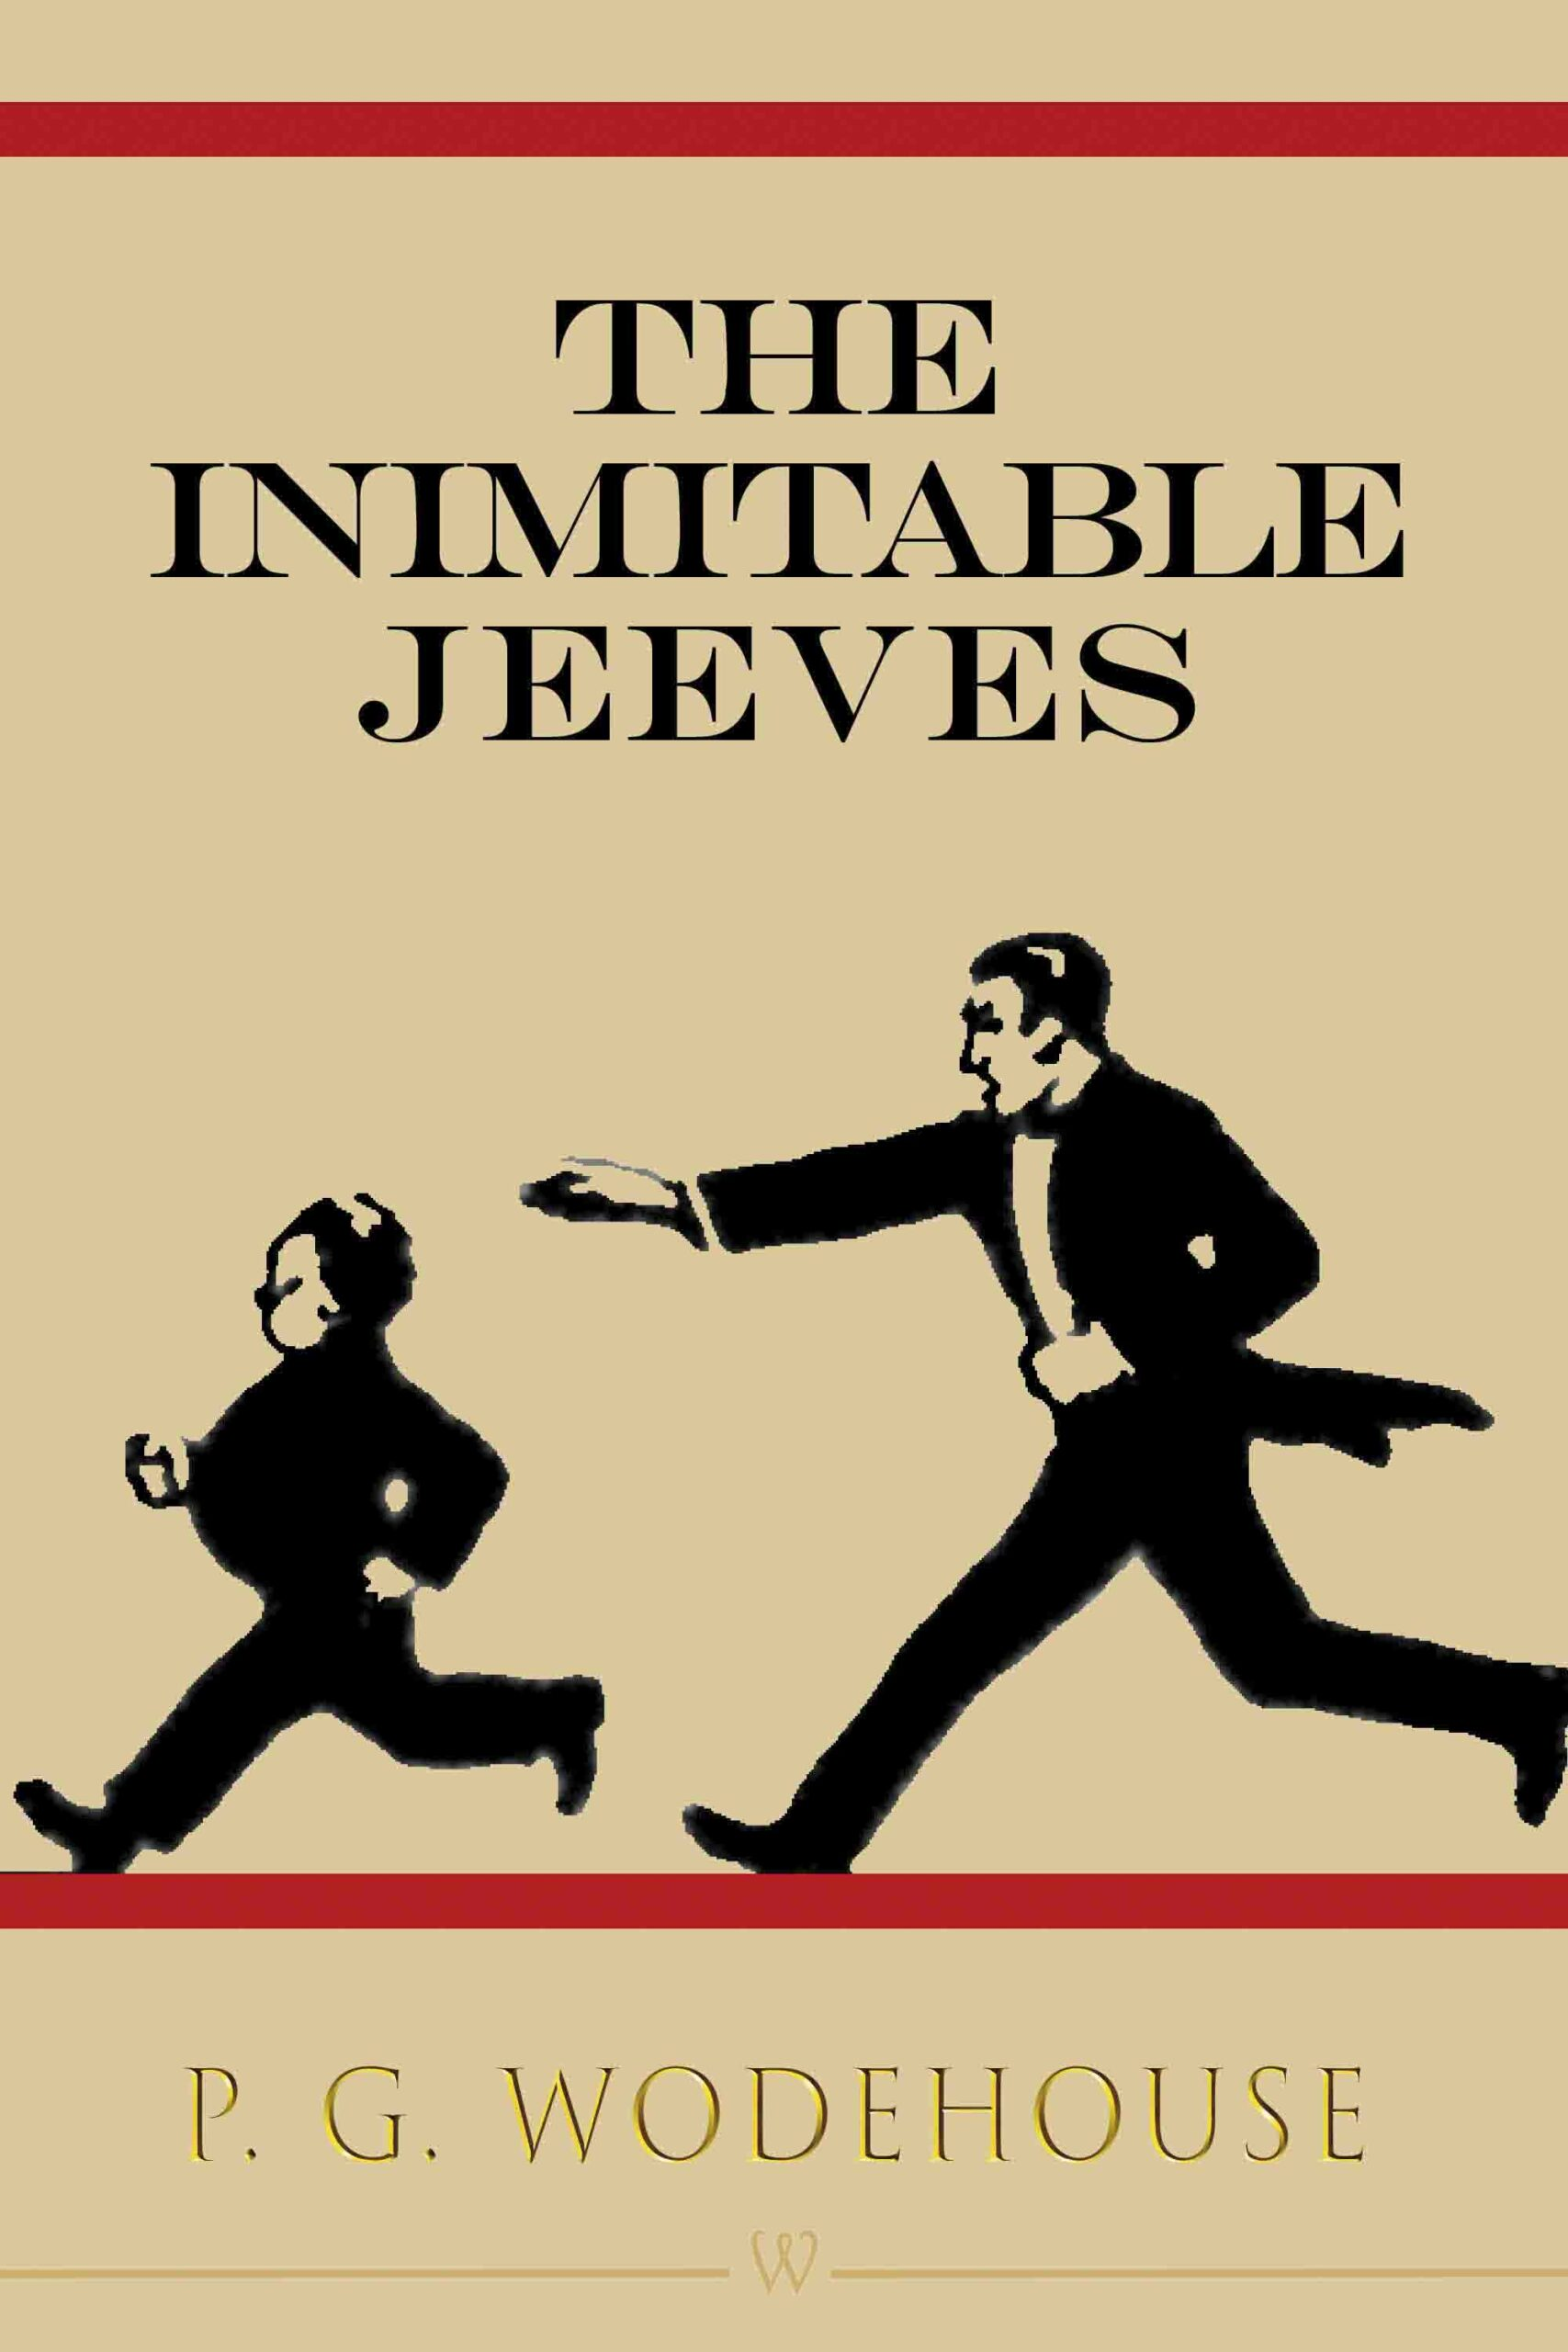 The Inimitable Jeeves (Wisehouse Classics Edition)